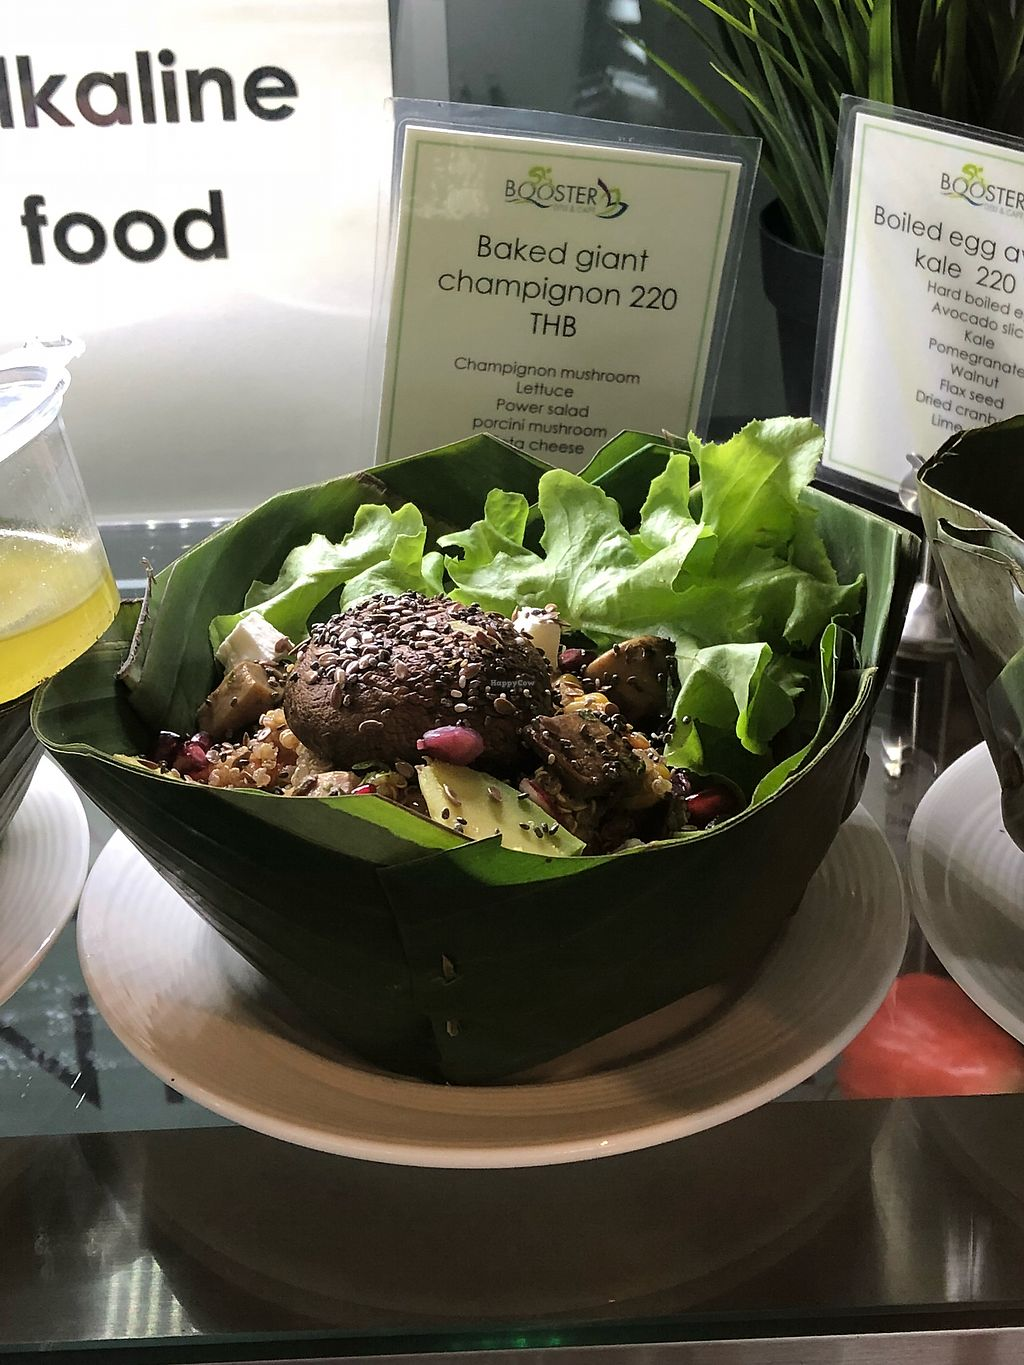 """Photo of Booster Deli & Cafe  by <a href=""""/members/profile/SoniaGivray"""">SoniaGivray</a> <br/>Big mushrooms salad  <br/> April 3, 2018  - <a href='/contact/abuse/image/104202/380055'>Report</a>"""